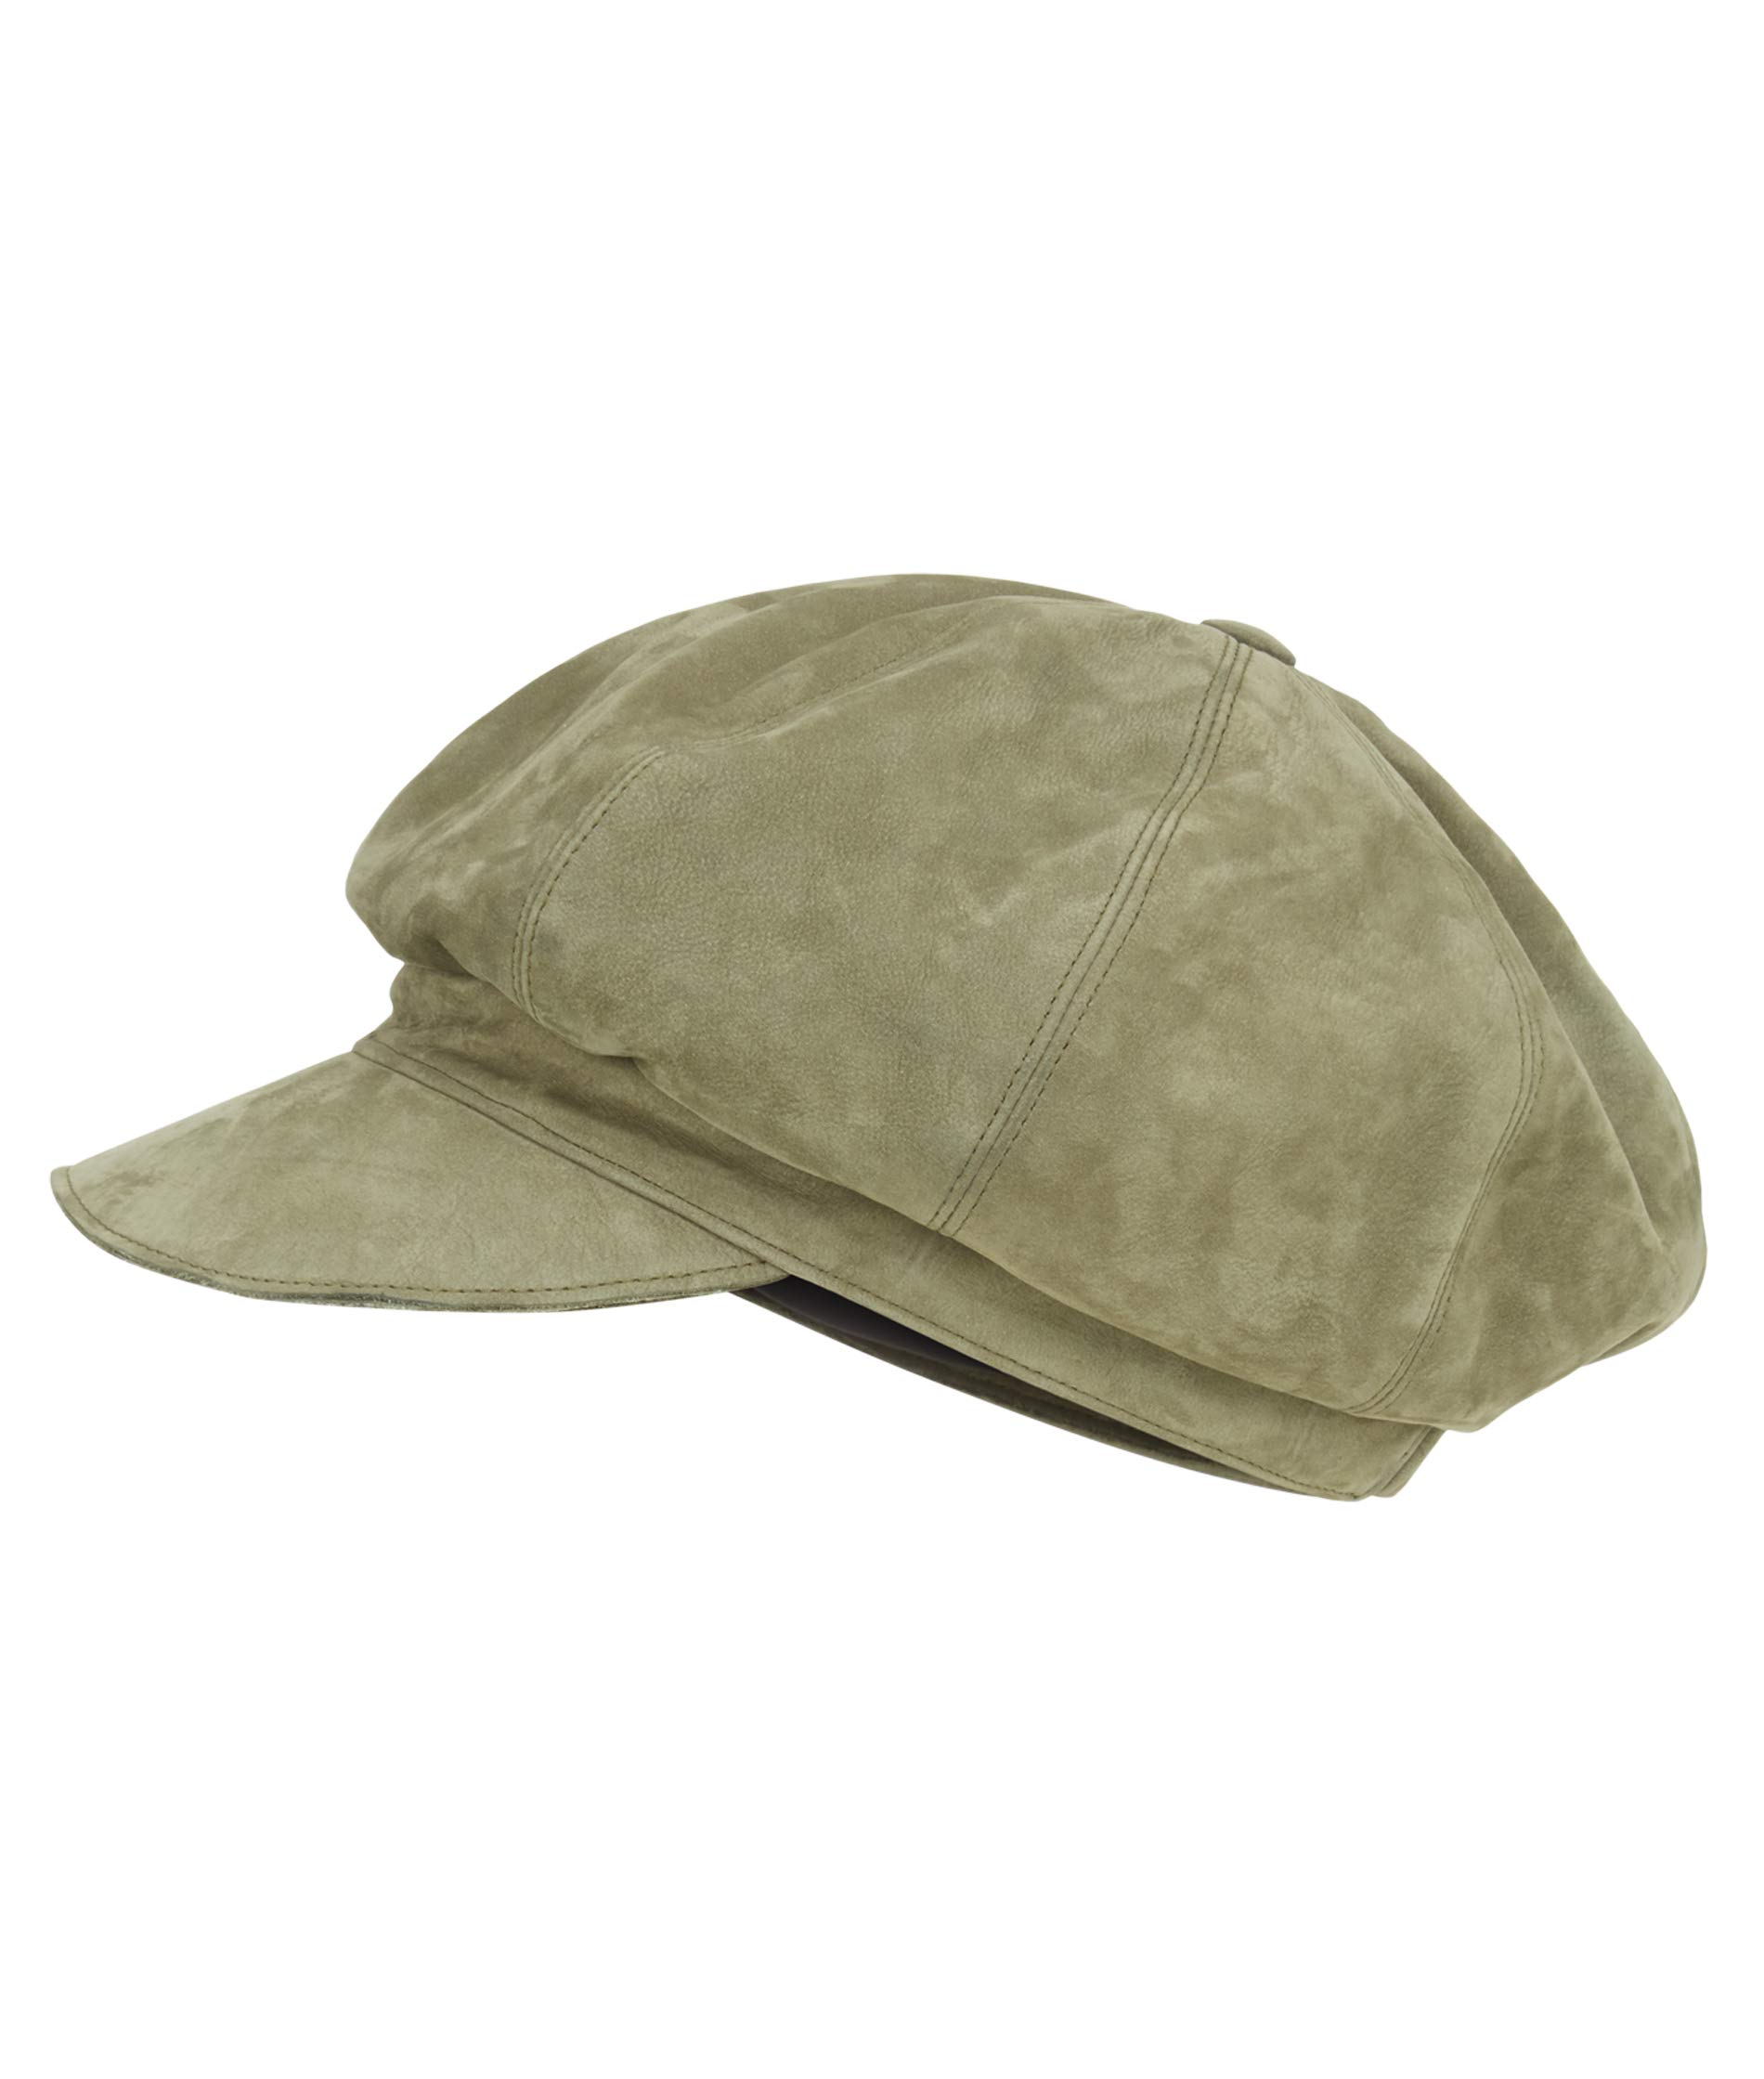 Troy London Bakers Cap One Size Olive